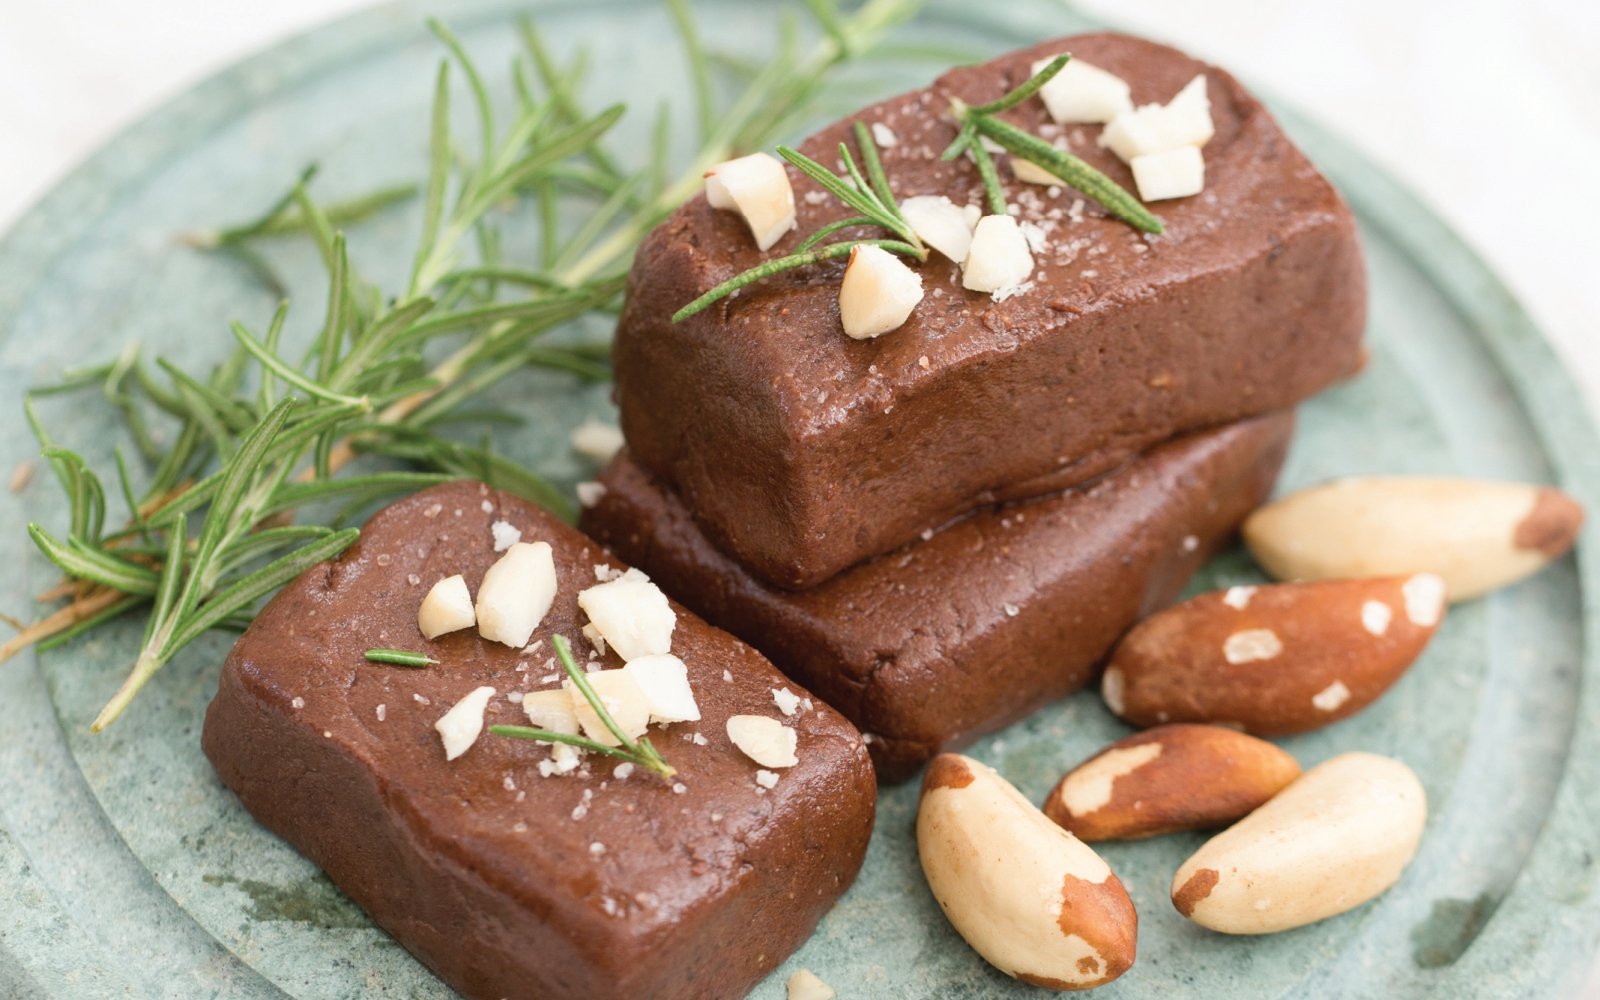 Raw Vegan Brazil Nut Fudge